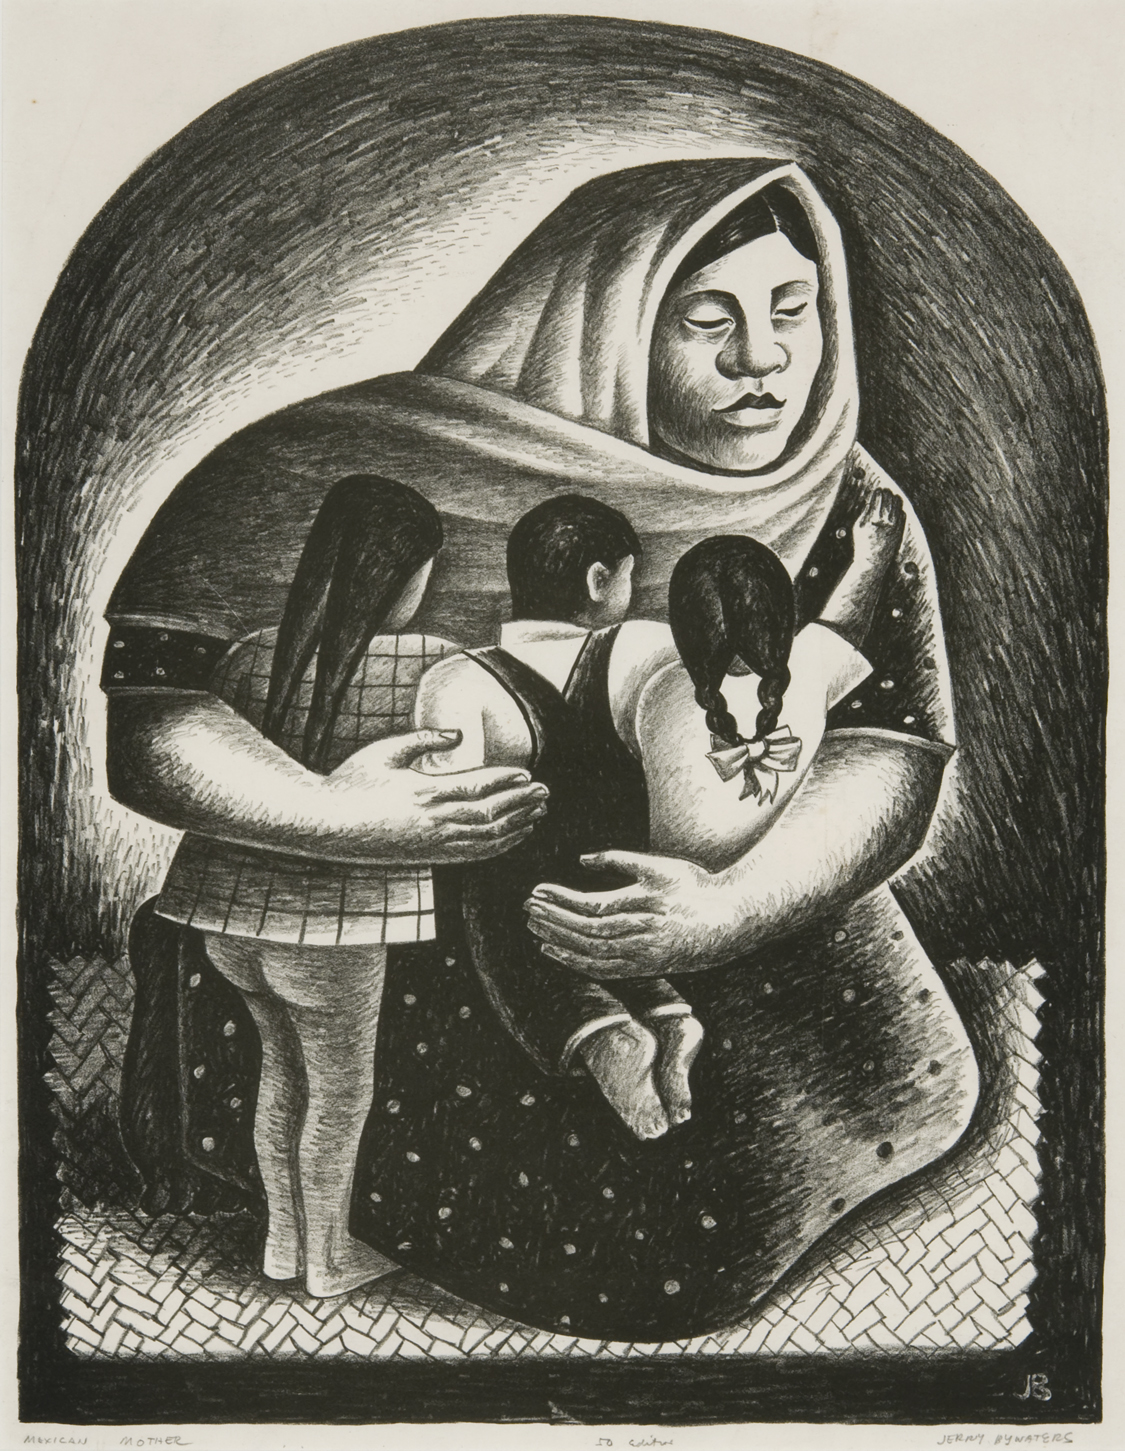 Jerry Bywaters, Mexican Mother, 1936, lithograph, Gift of the 2016 Collectors Circle